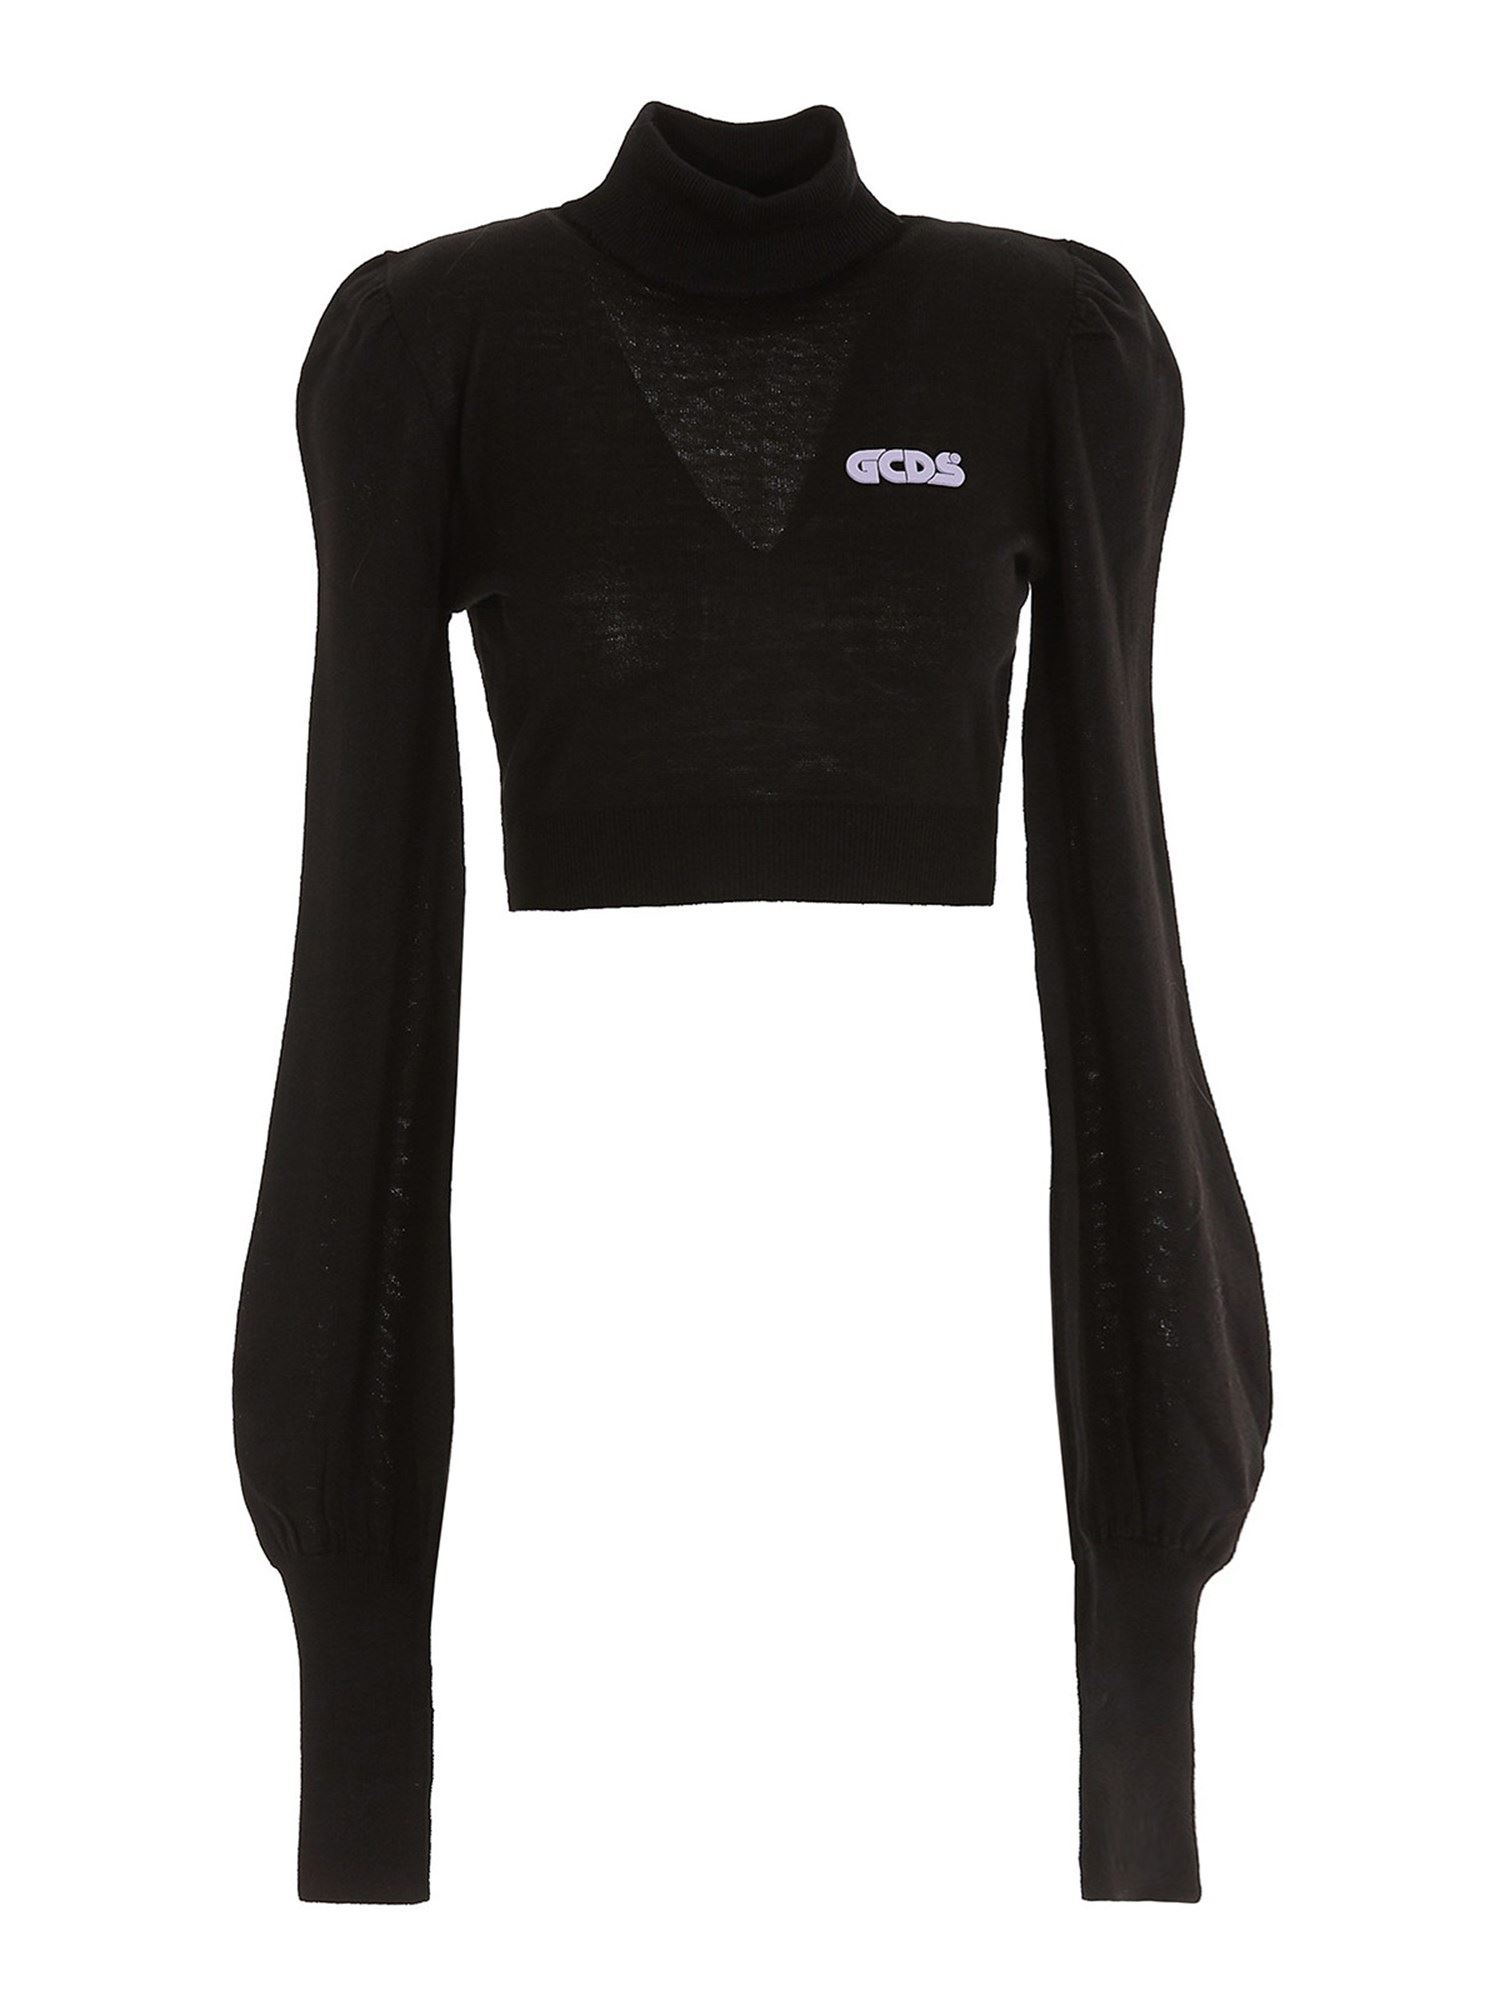 Gcds WOOL BLEND CROPPED TURTLENECK